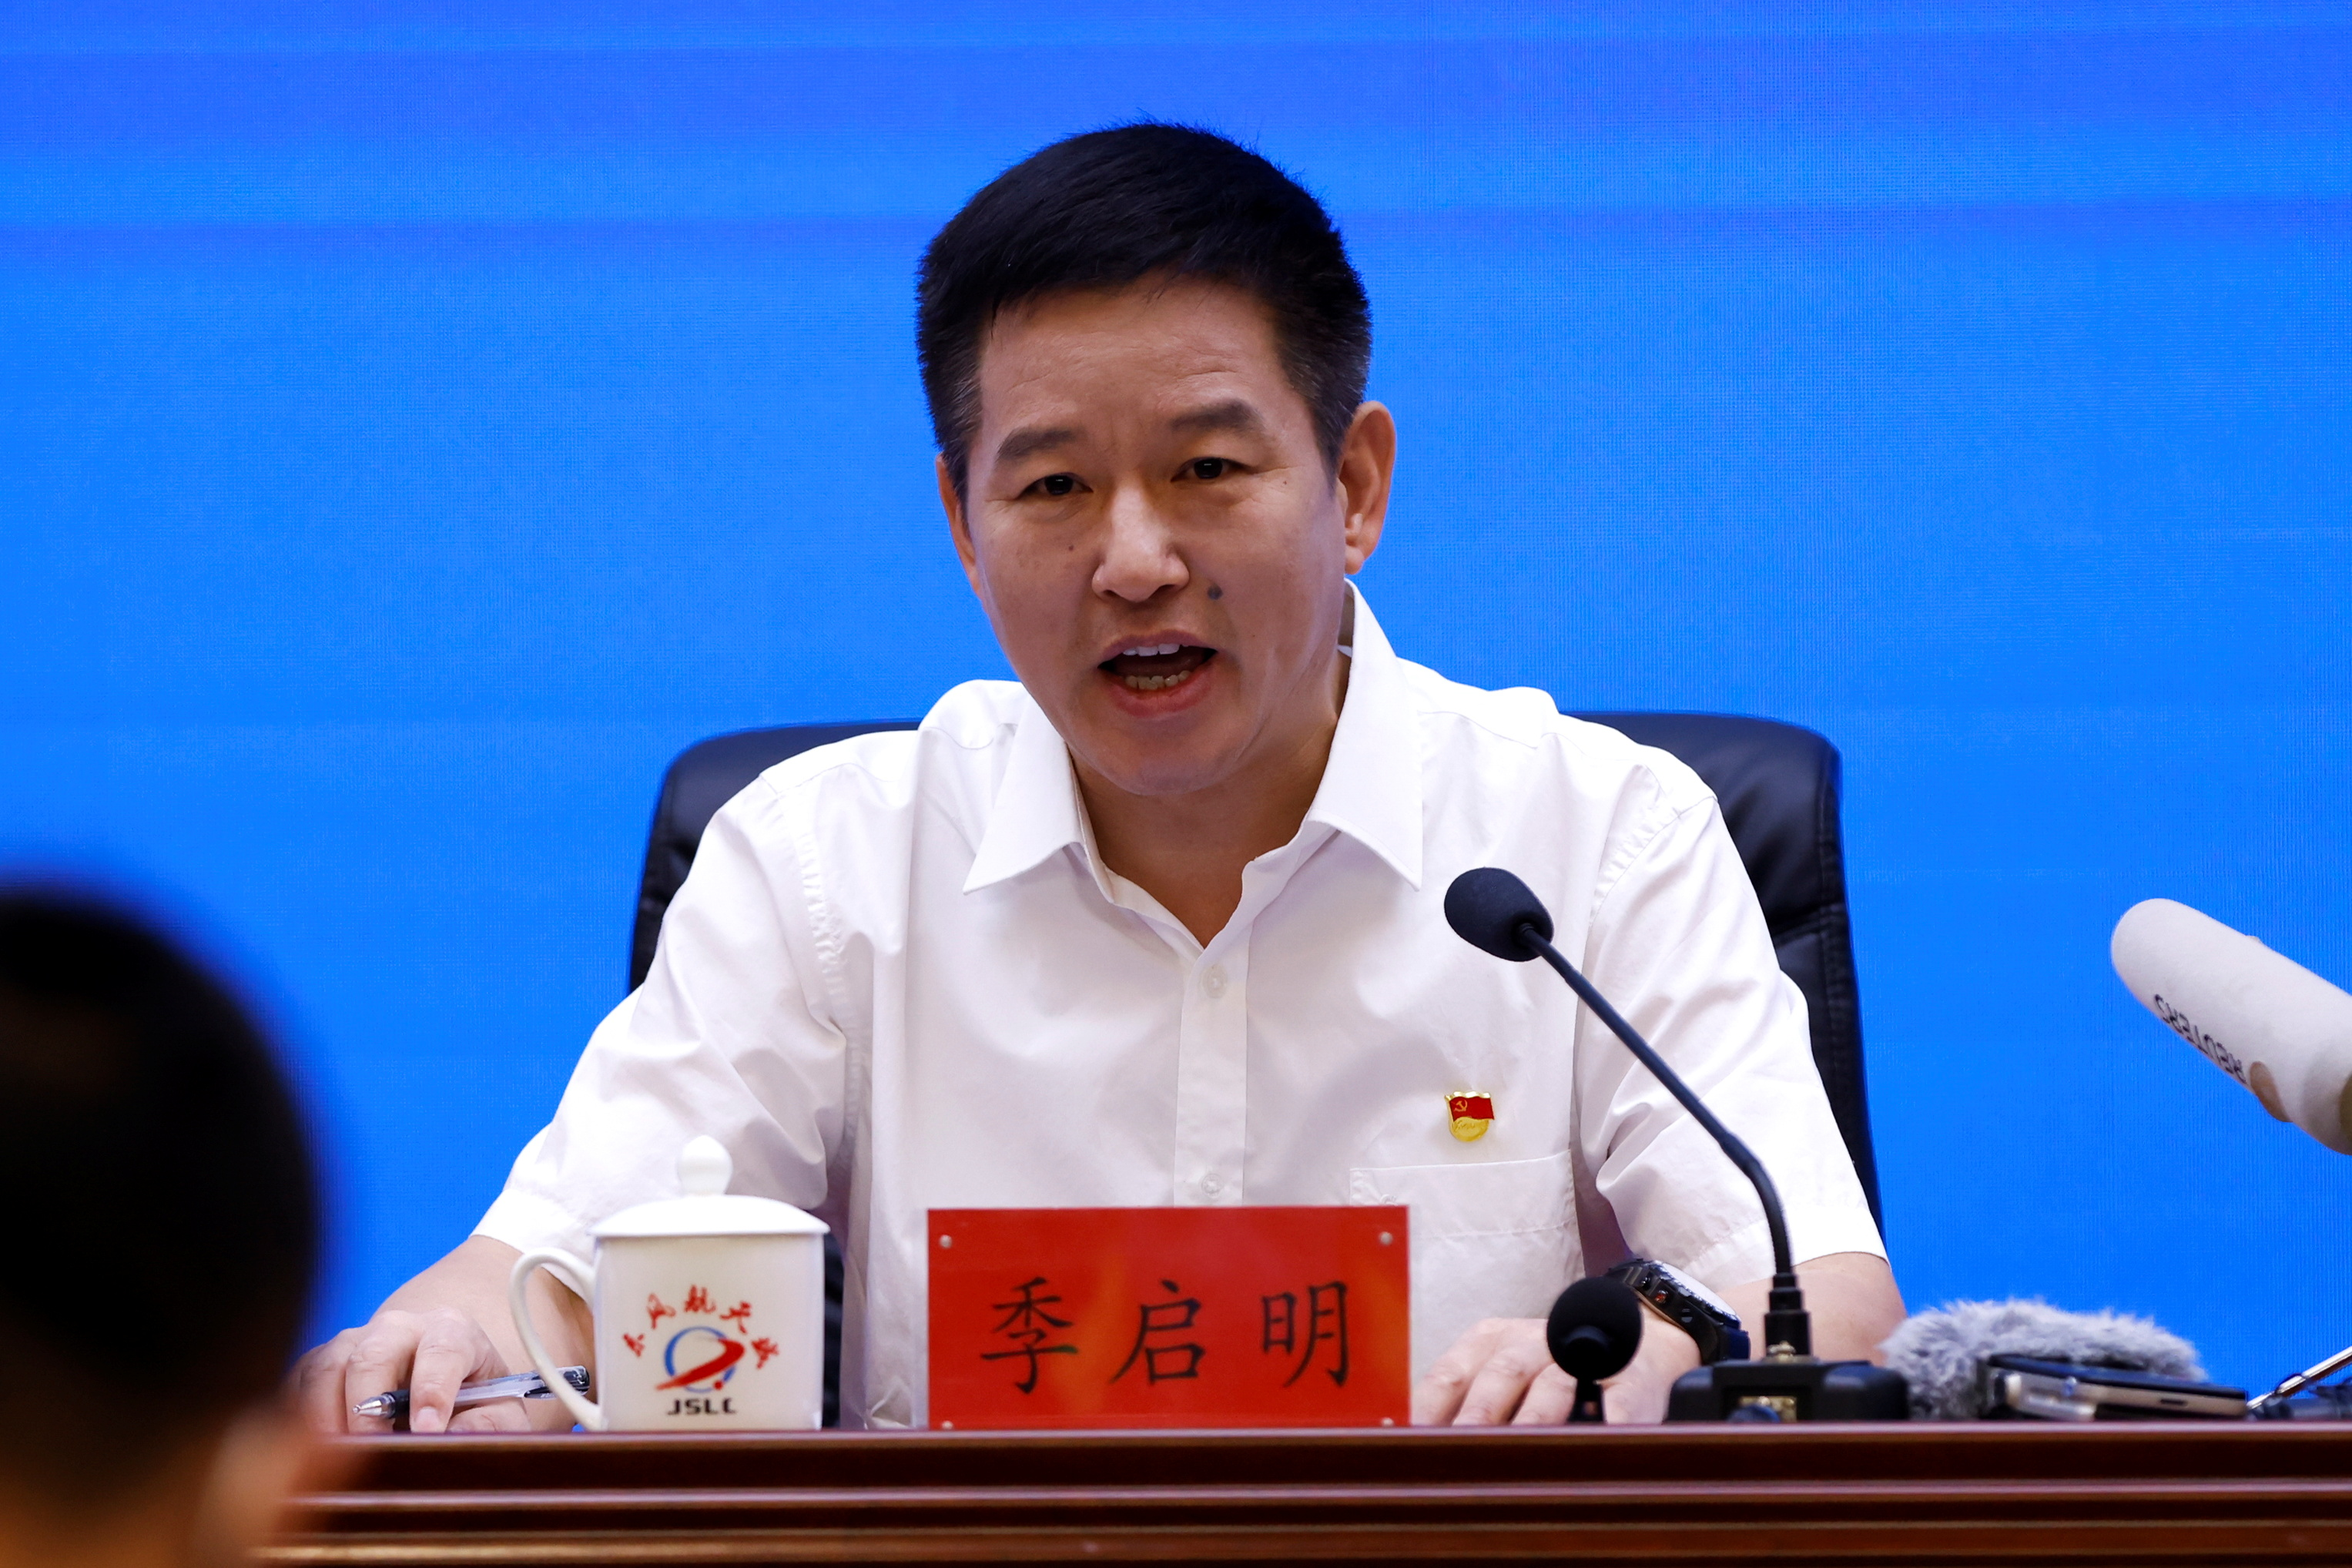 Ji Qiming, Assistant Director General of China Manned Space Agency speaks during a news conference before the Shenzhou-12 mission to build China's space station, at Jiuquan Satellite Launch Center in Gansu province, China June 16, 2021. REUTERS/Carlos Garcia Rawlins